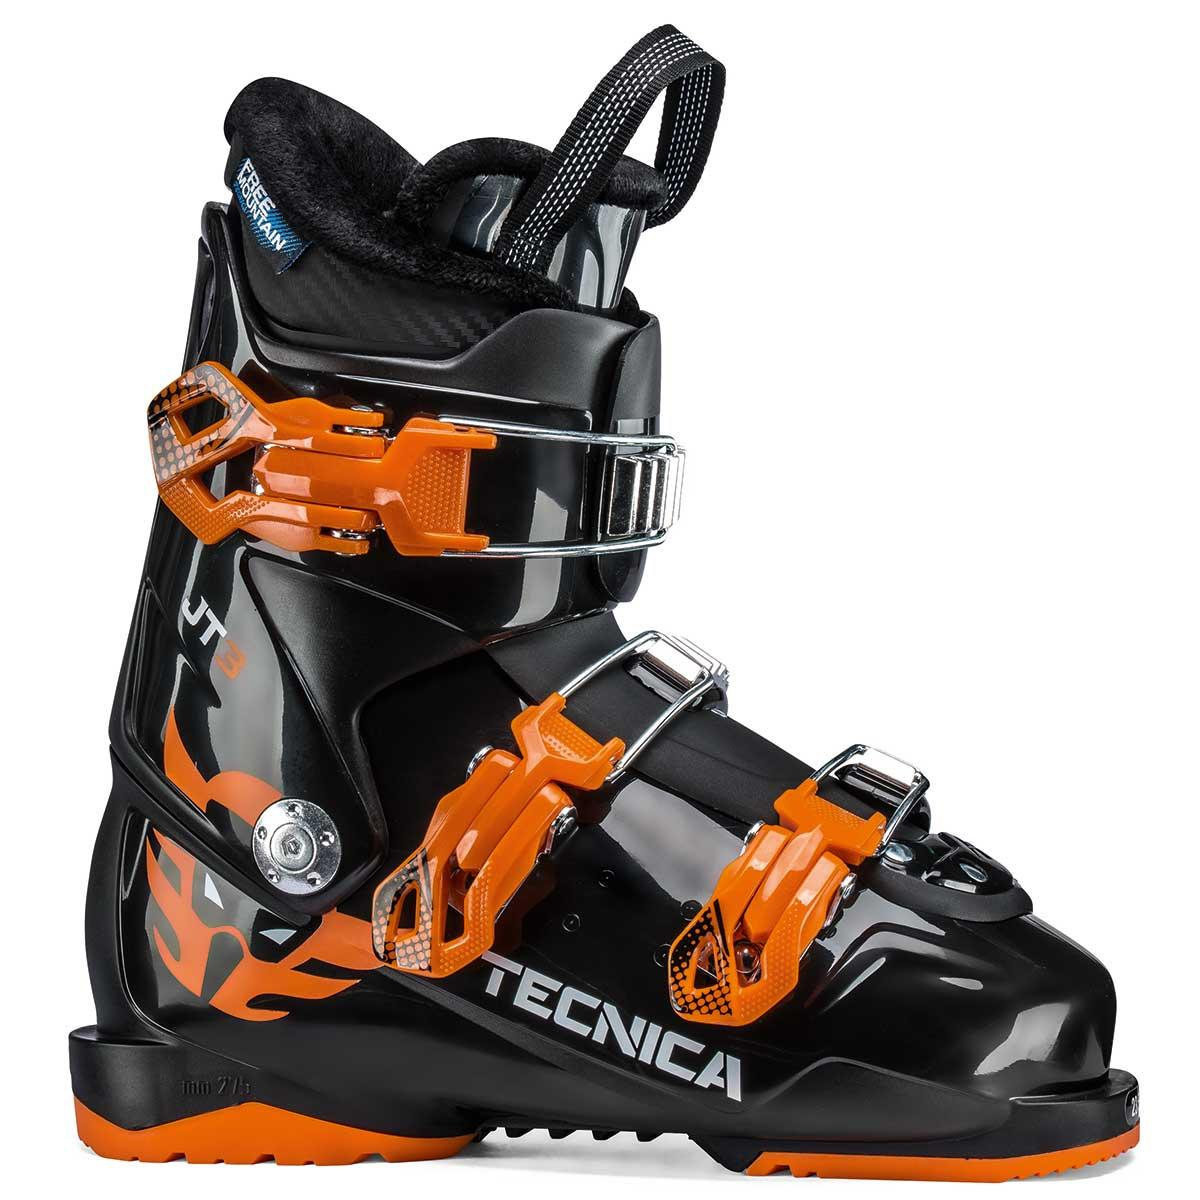 Tecnica JT 3 junior ski boot in black